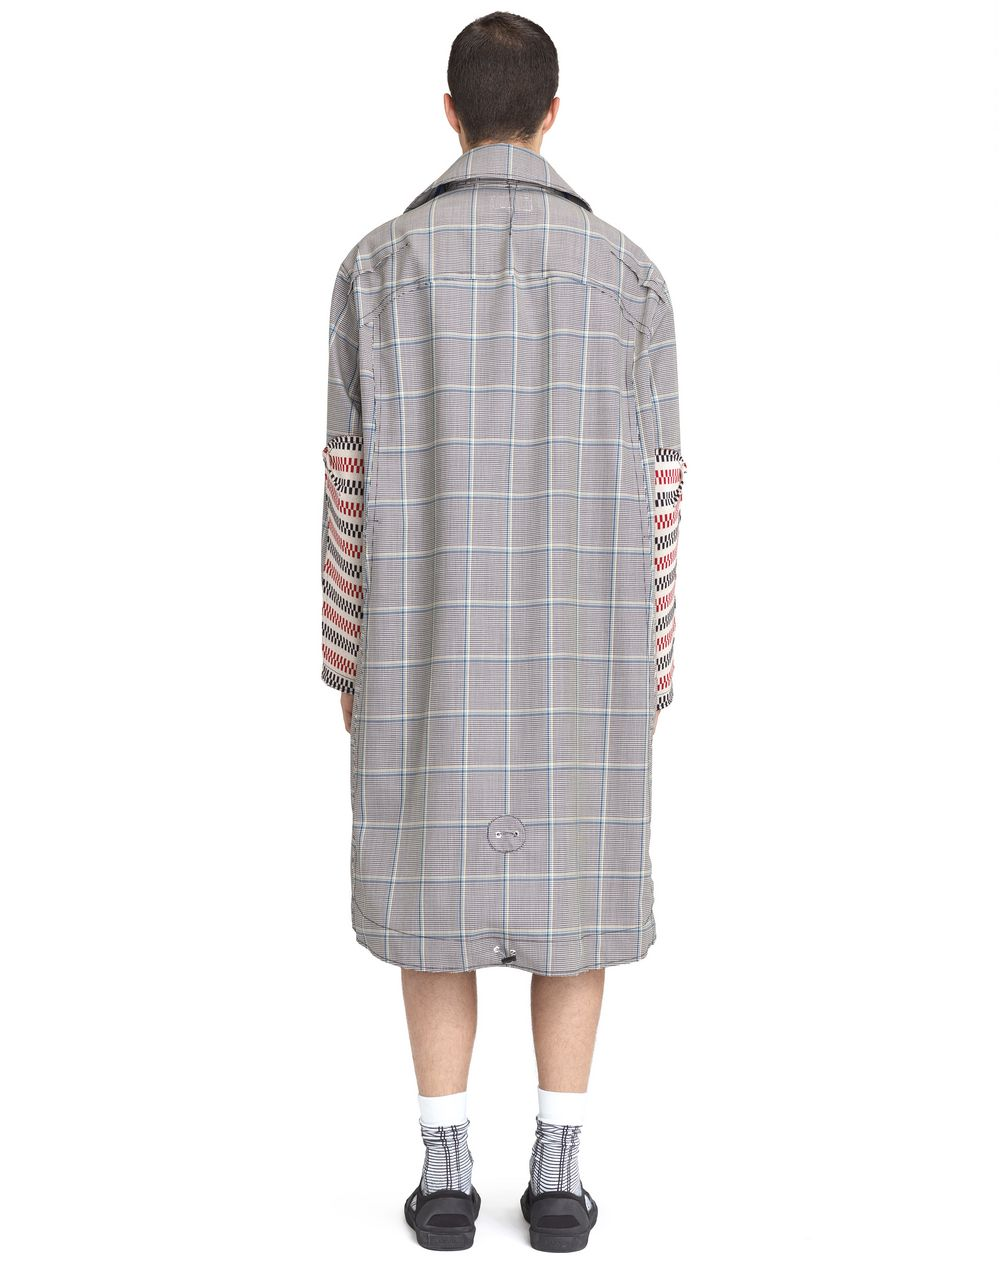 REVERSIBLE RAINCOAT  - Lanvin